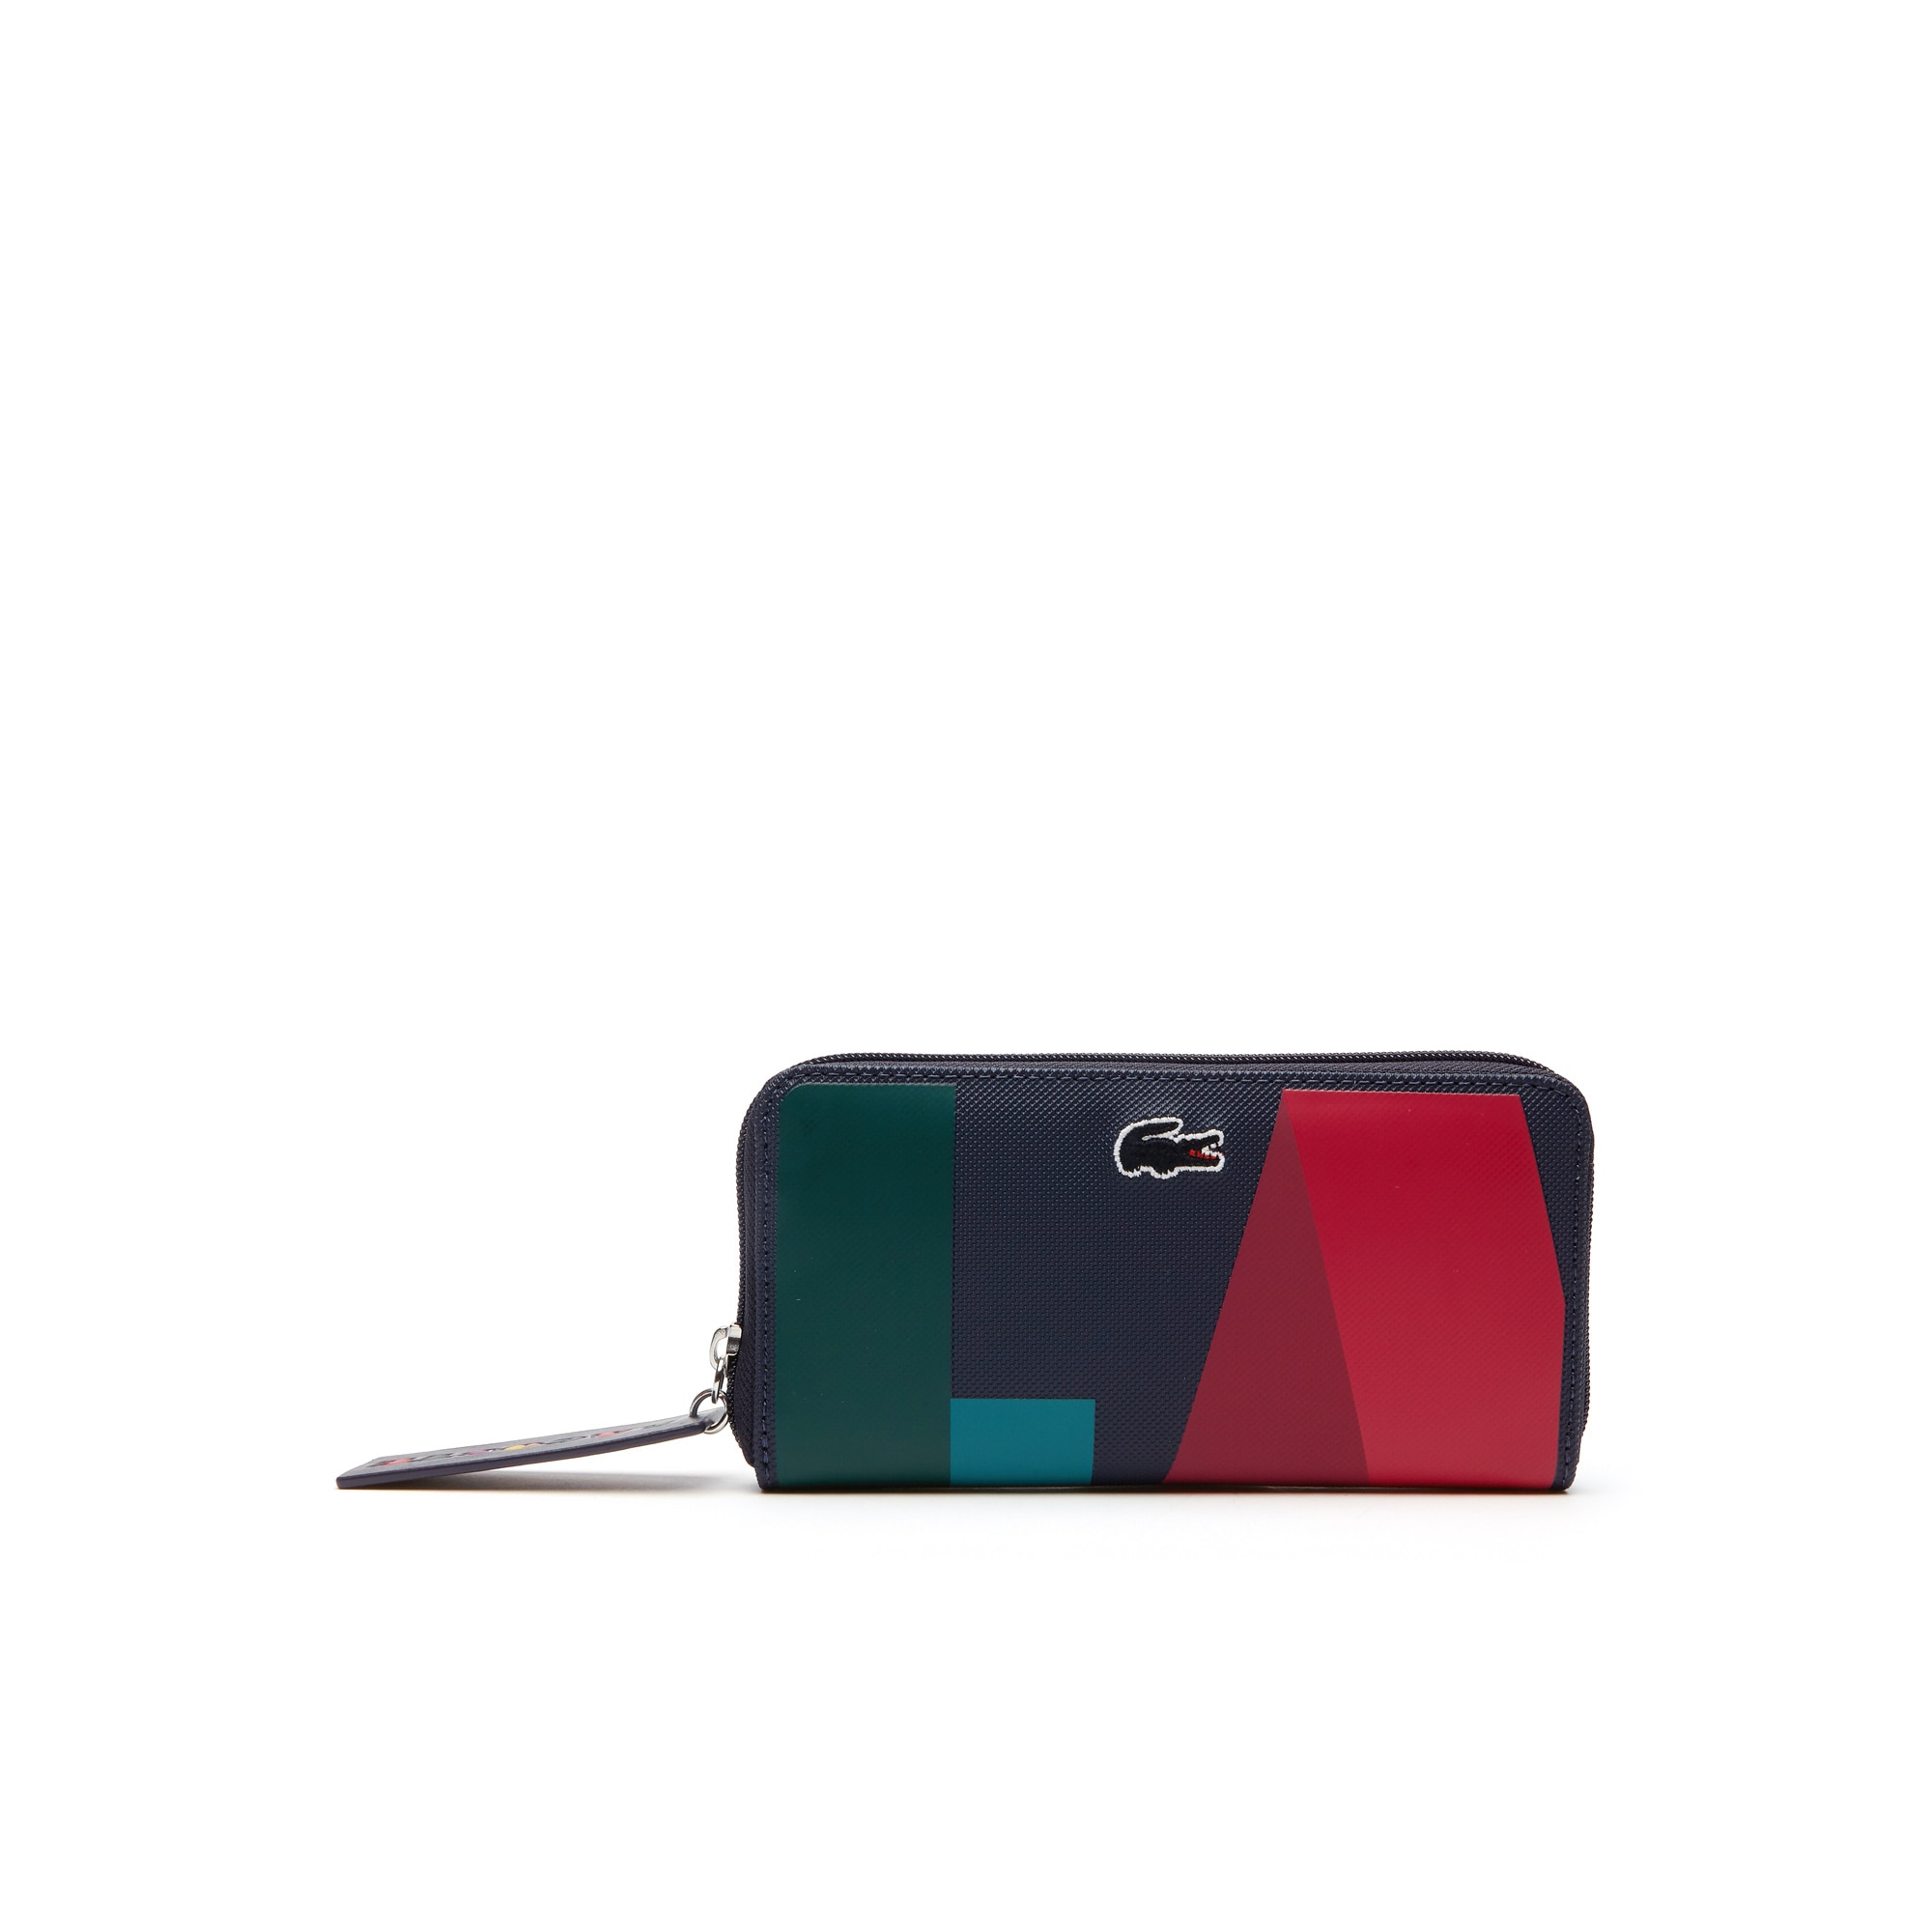 Women's L.12.12 Concept Colorblock Petit Piqué Zip Wallet